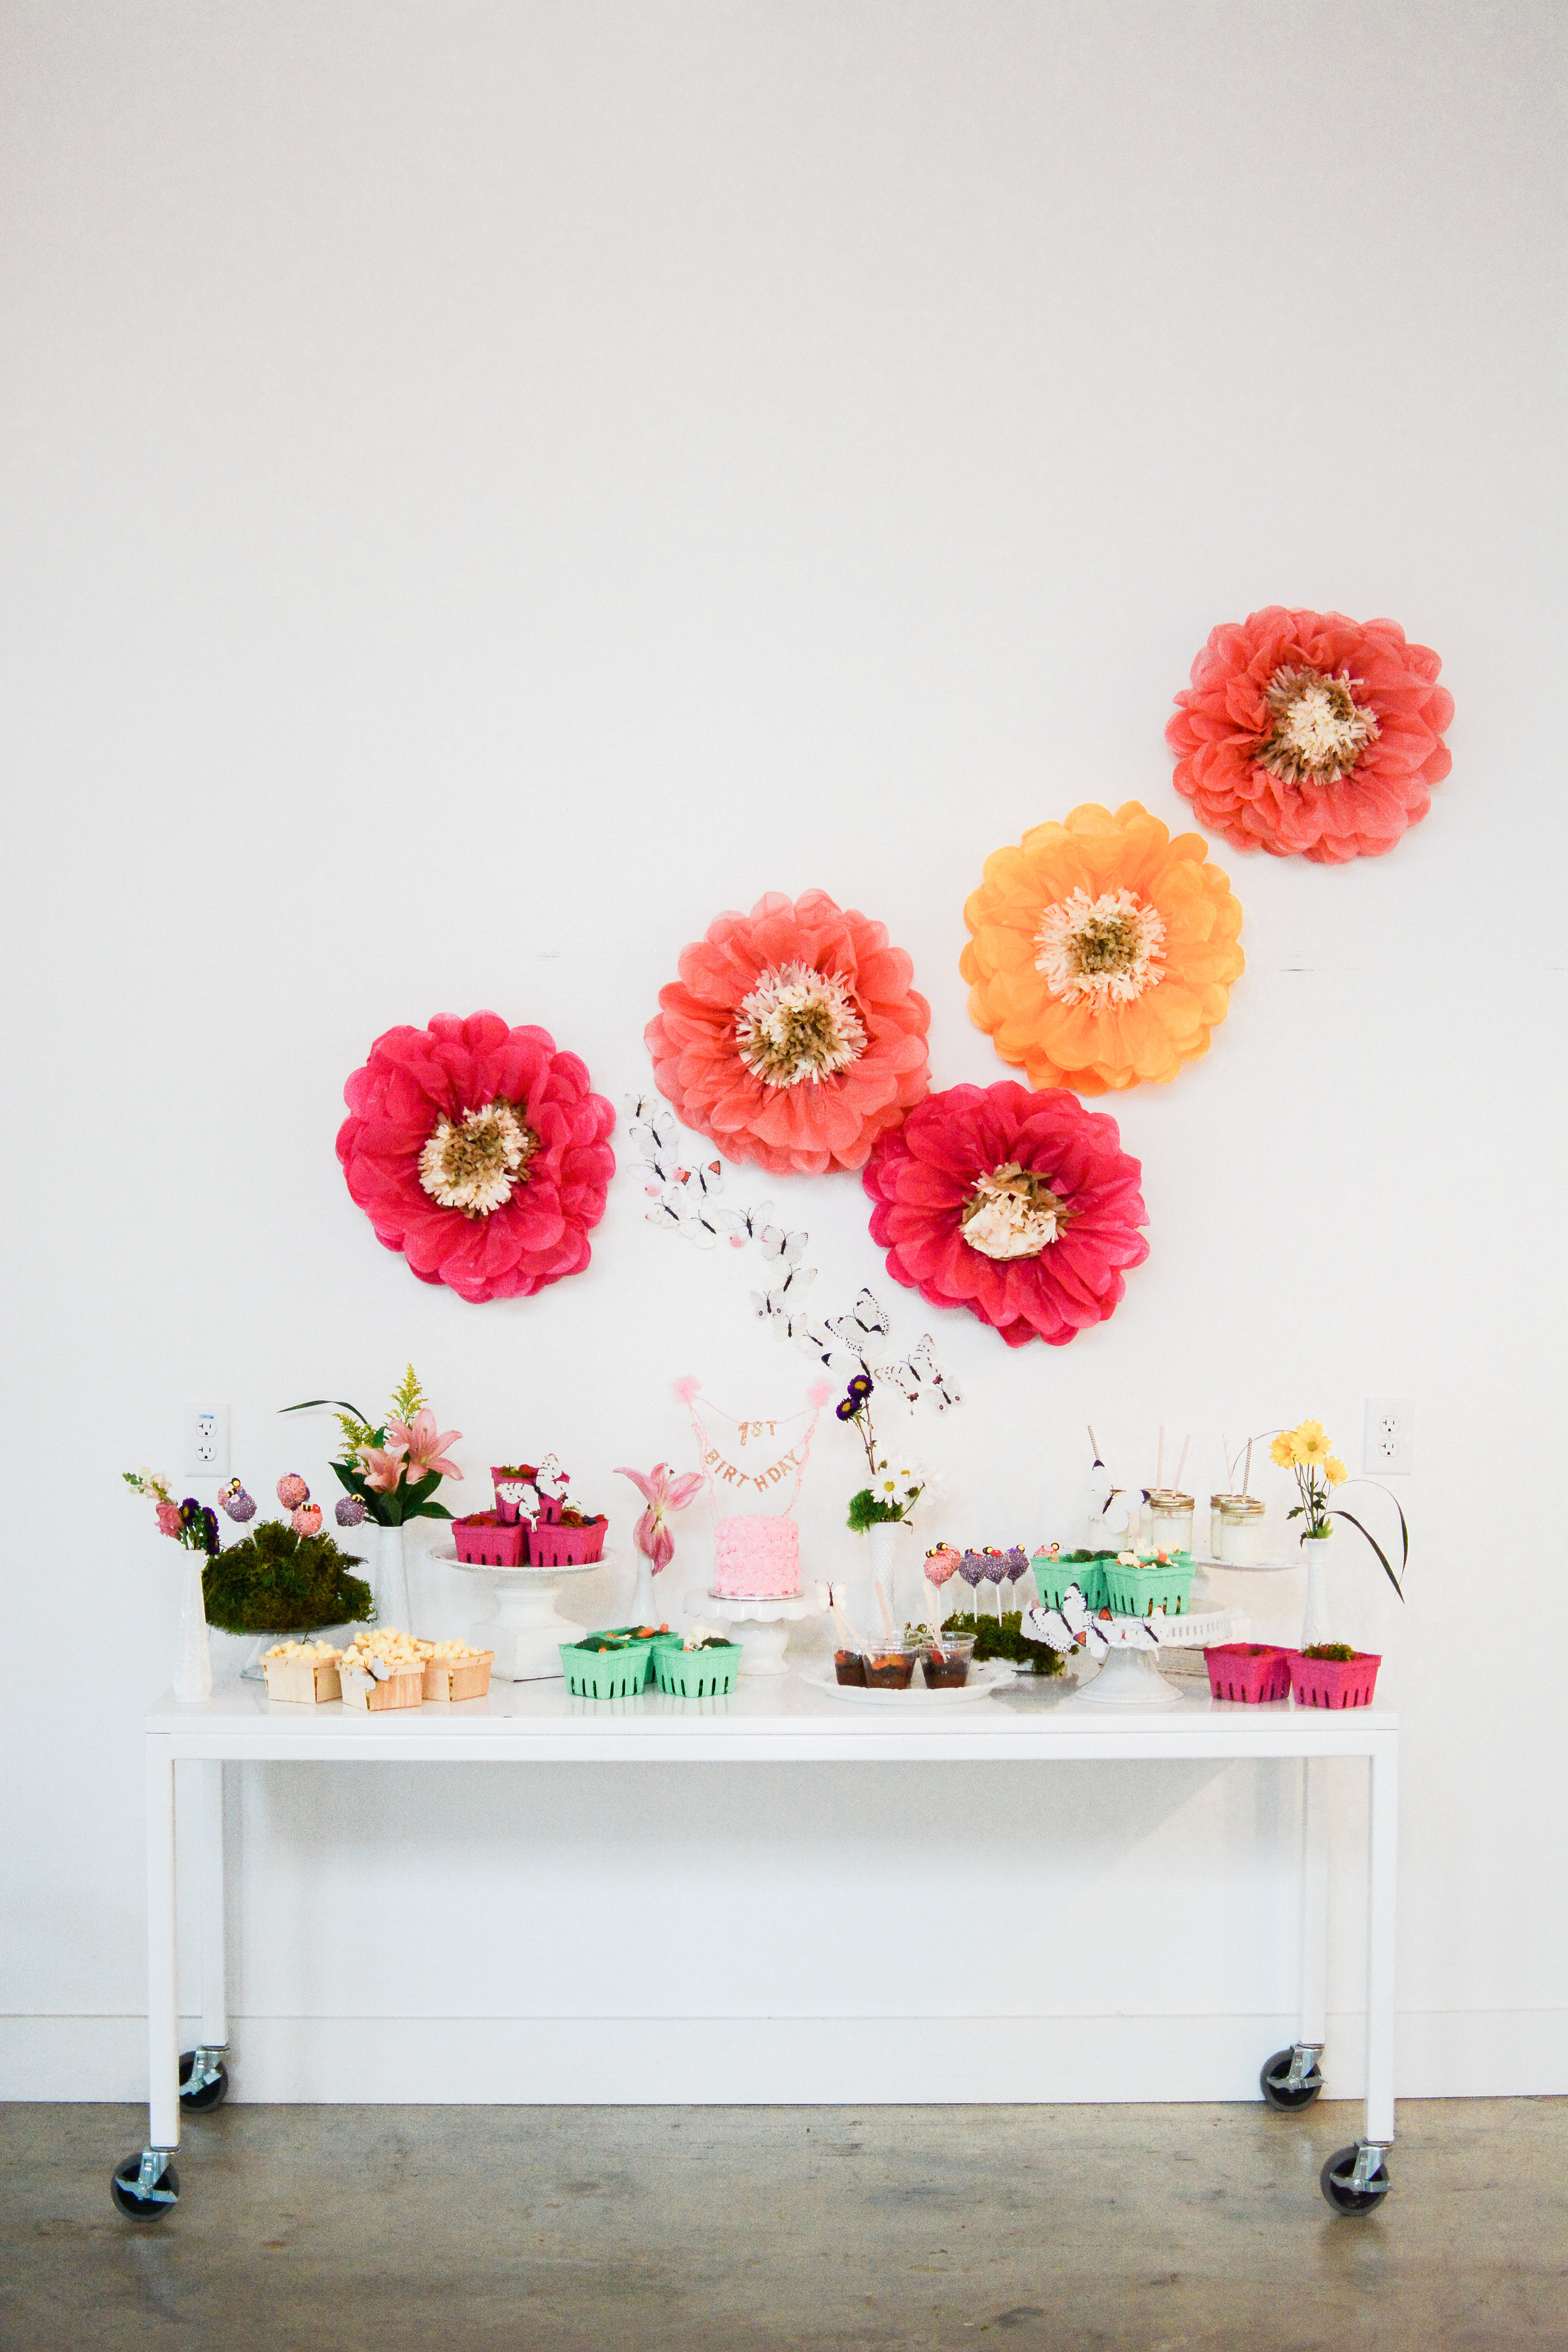 Baby's First Bee-Day Garden Party Theme _ Food & Drink Table _ The Tony Townie _ Photo 7